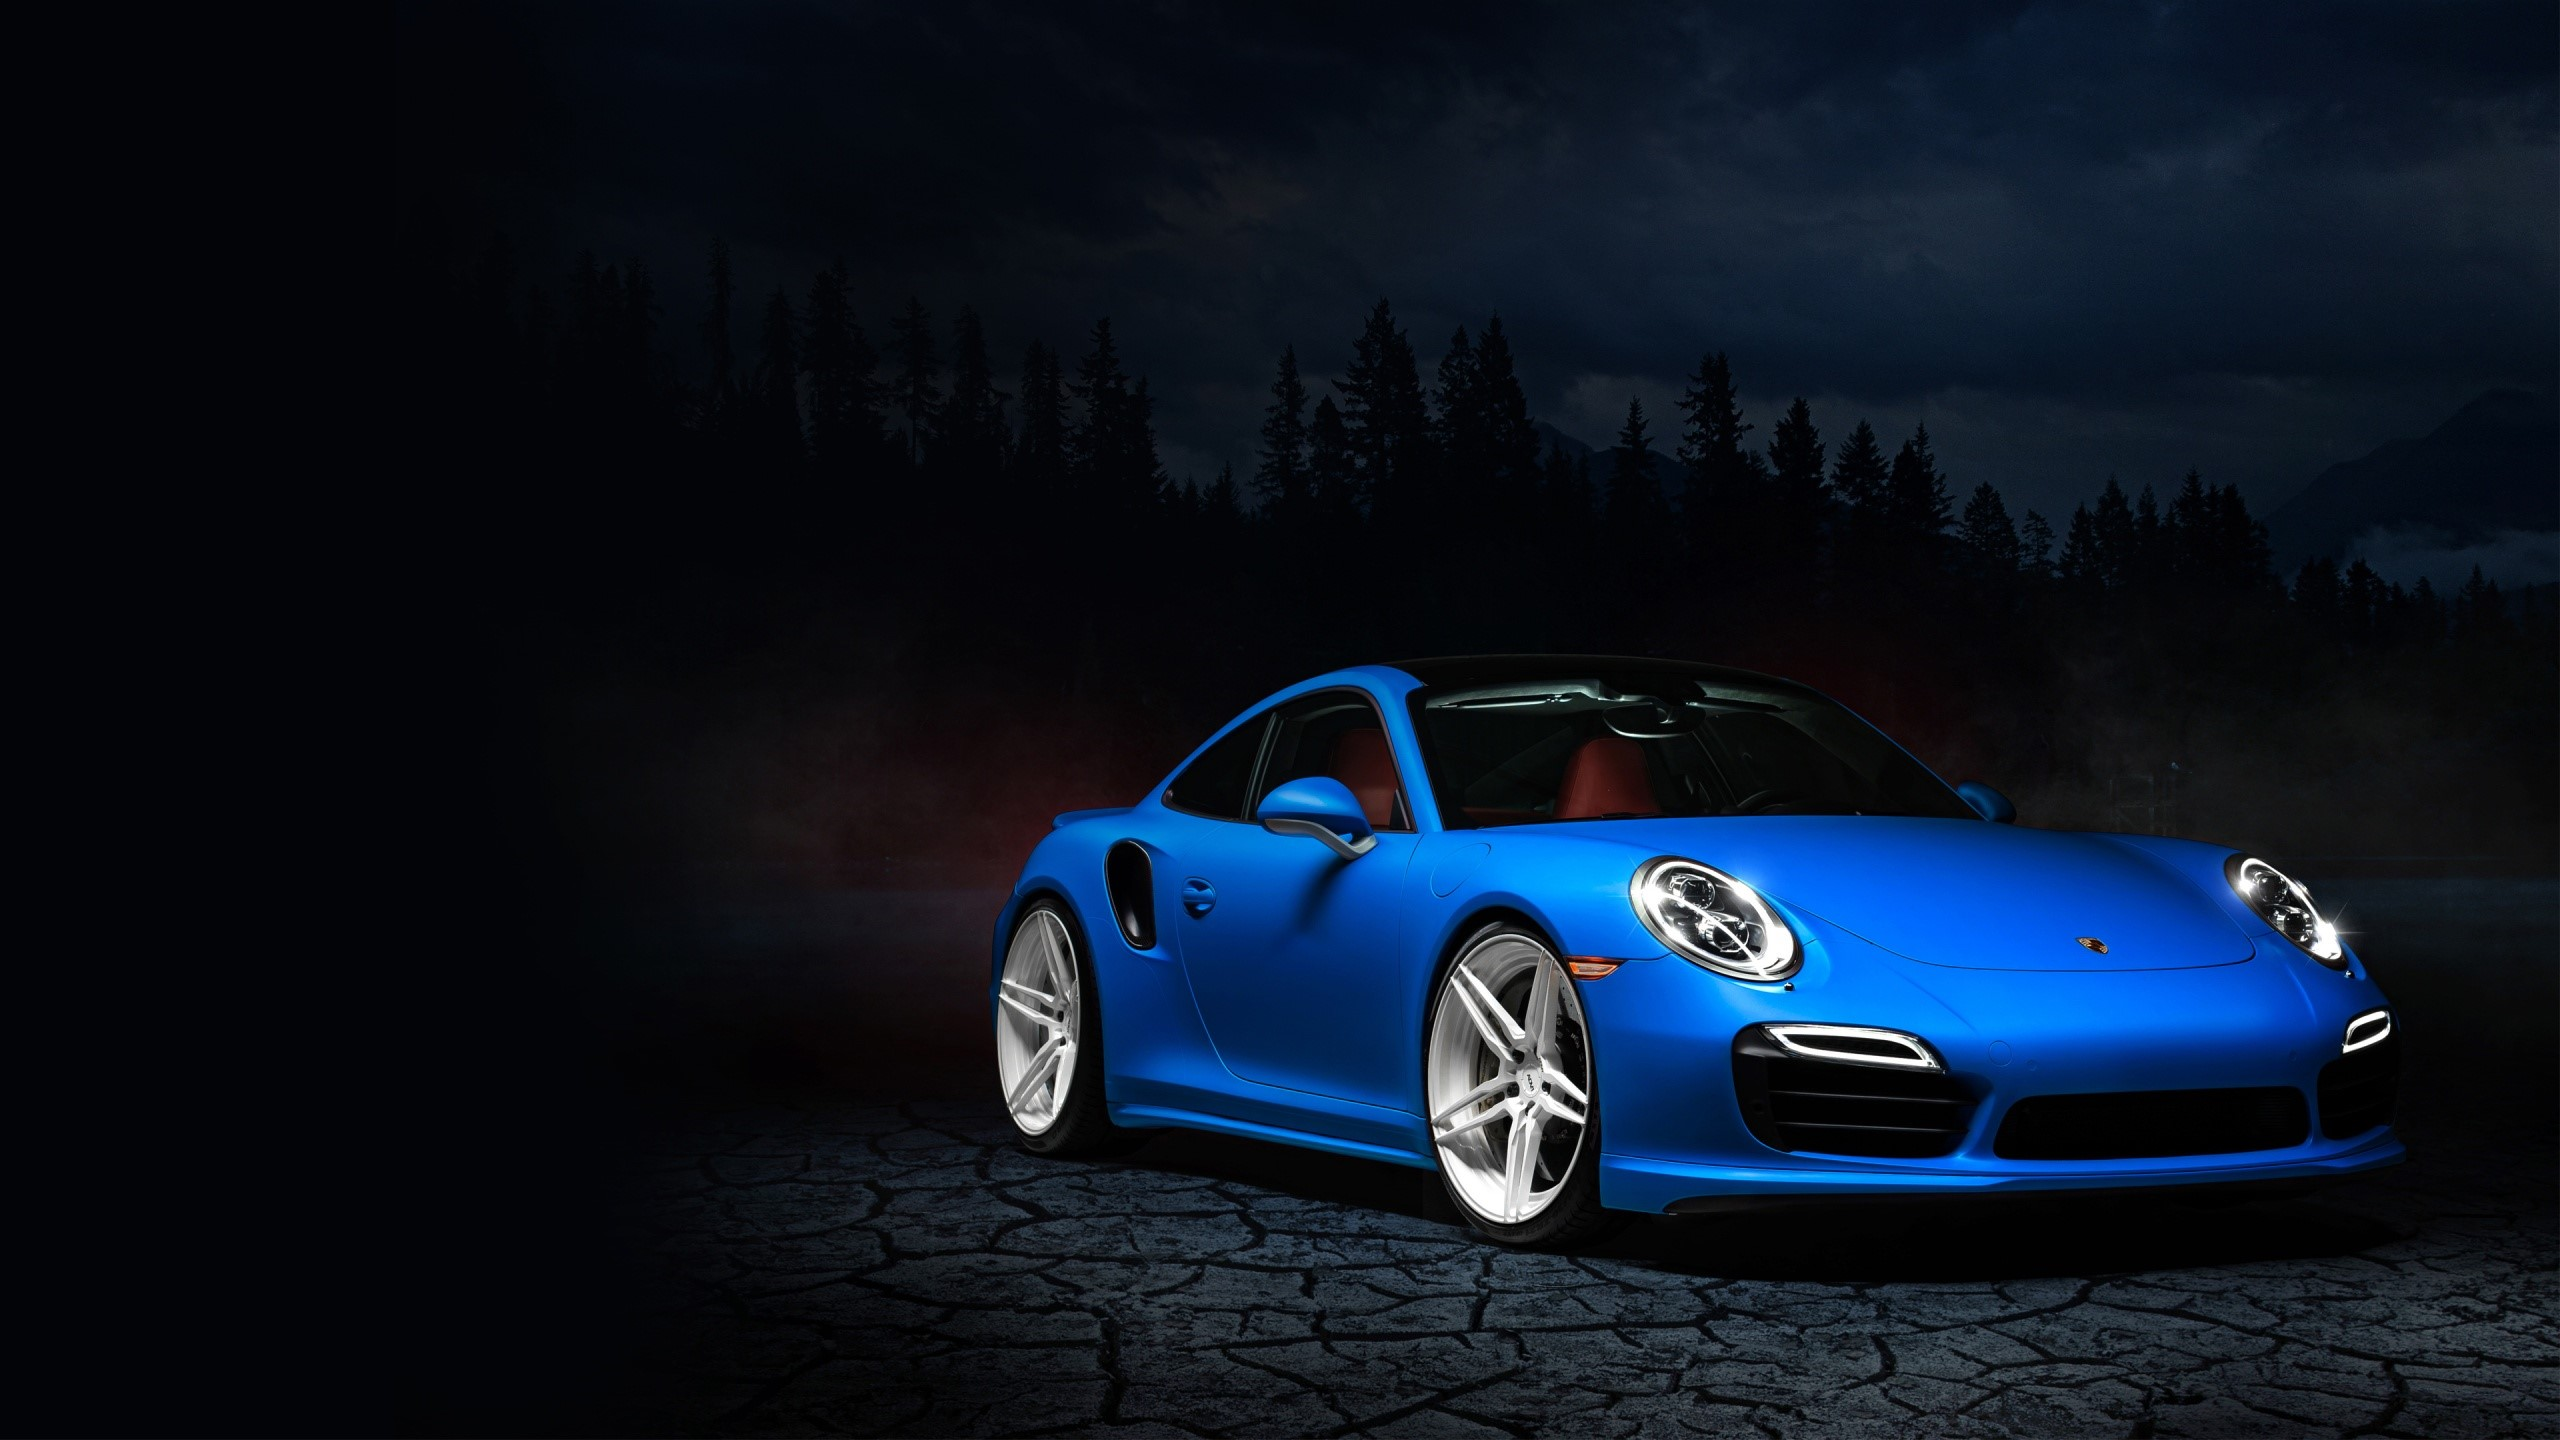 Wallpaper Porsche 991 blue